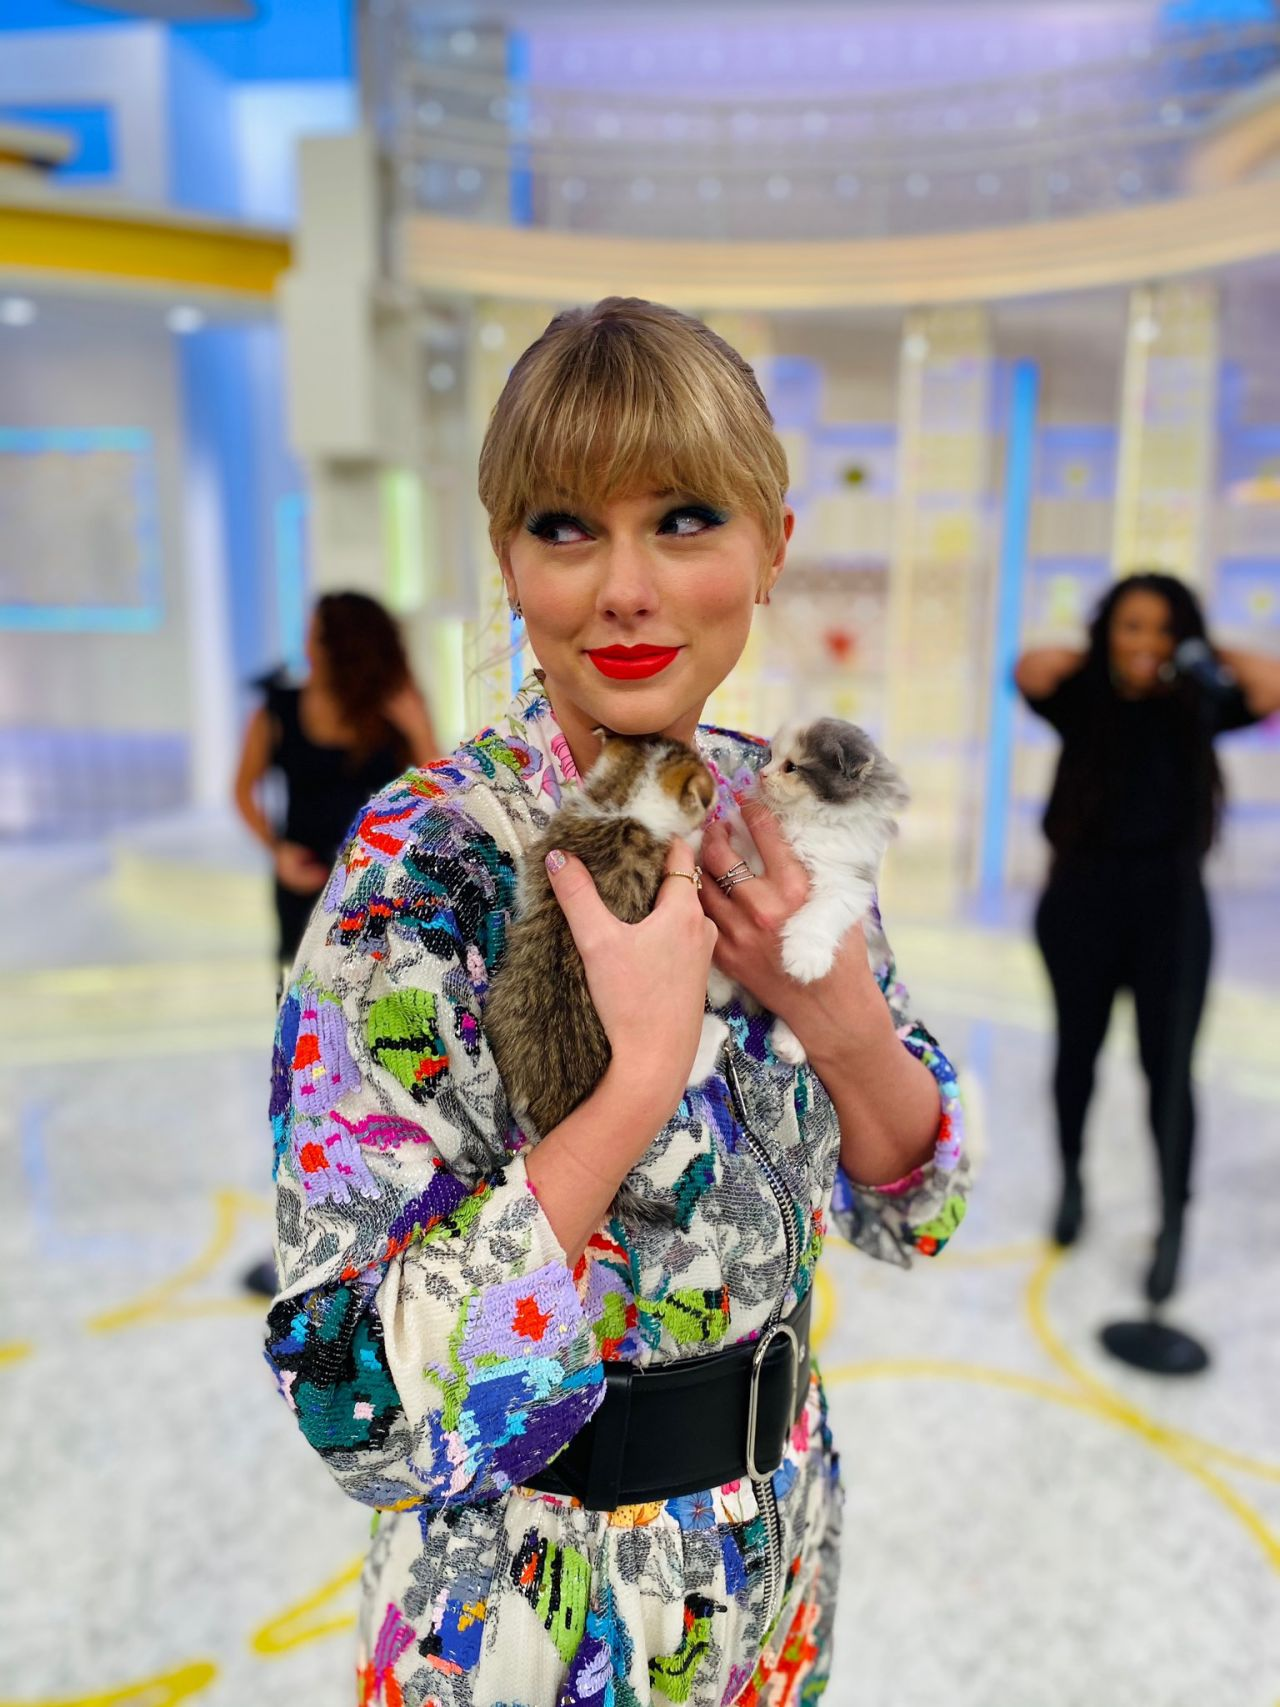 Gorgeous Taylor Swift posing with some cute cats in Tokyo, Japan